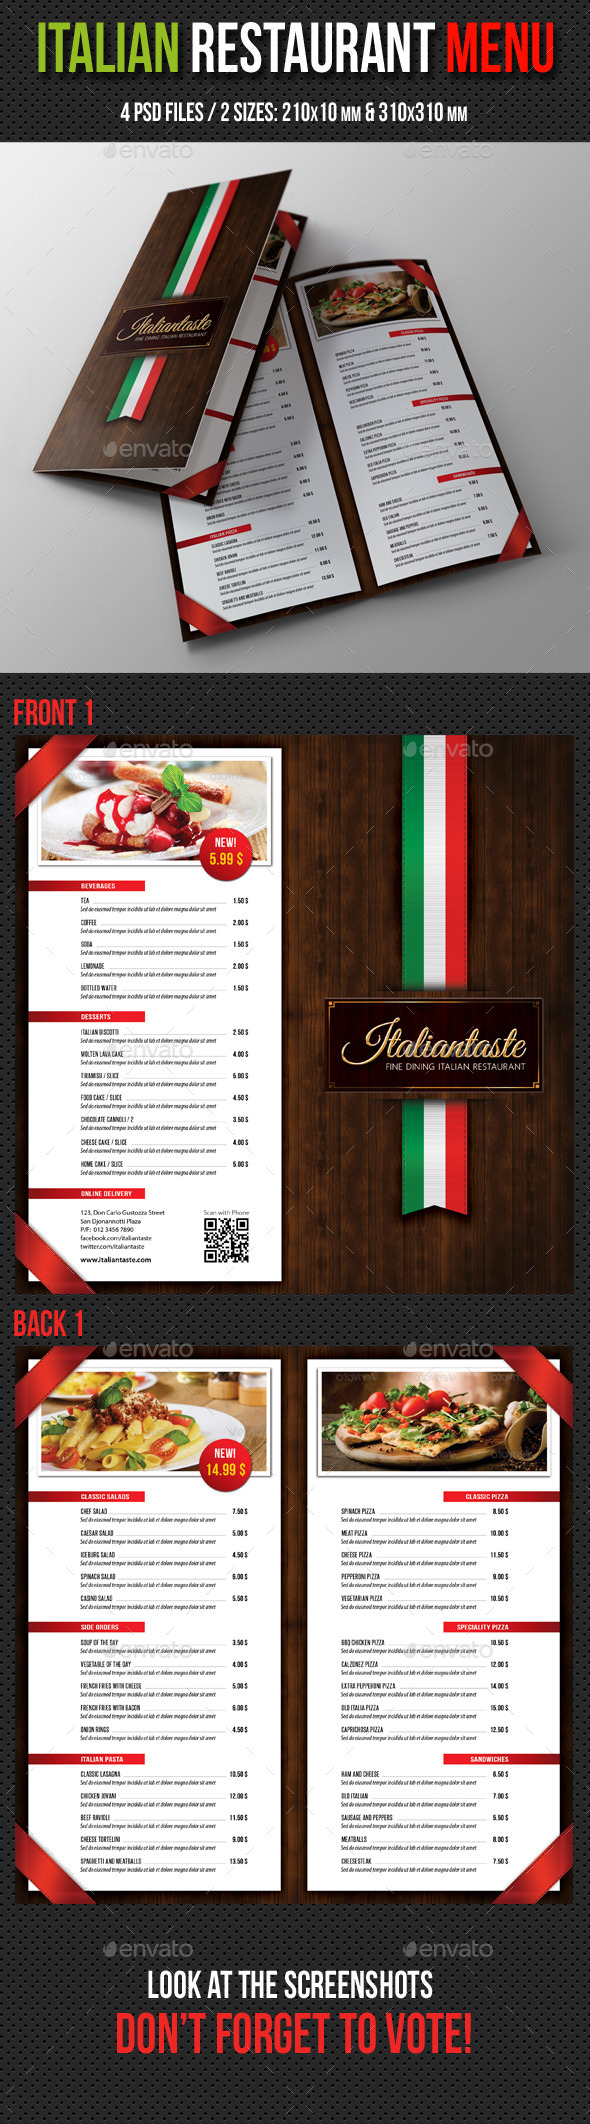 Italian Restaurant Menu Brochure - Food Menus Print Templates